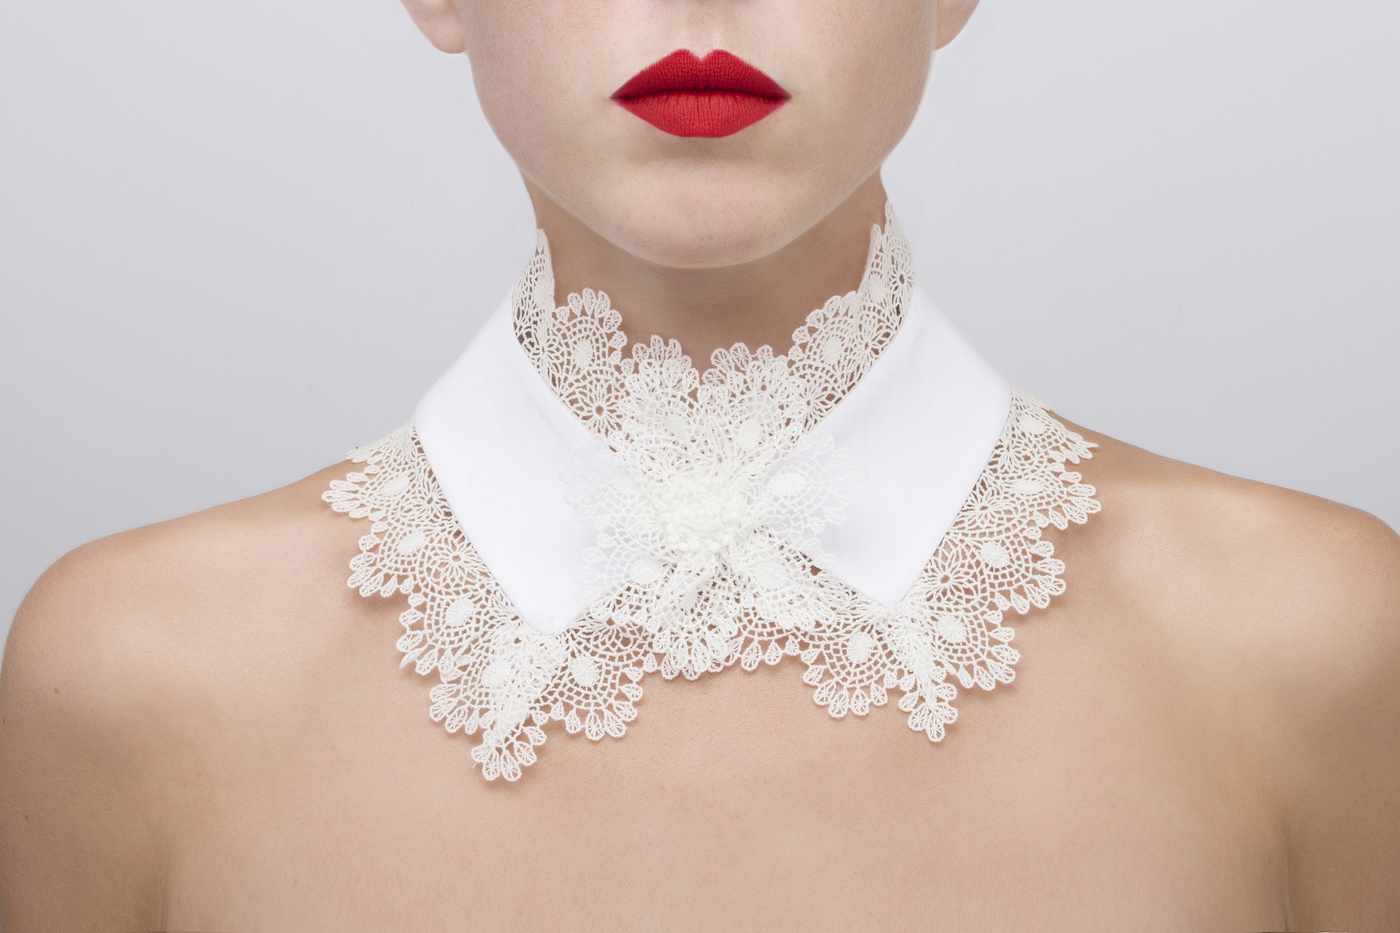 Collars and Cuffs - The Transformative Power of Catherine Osti